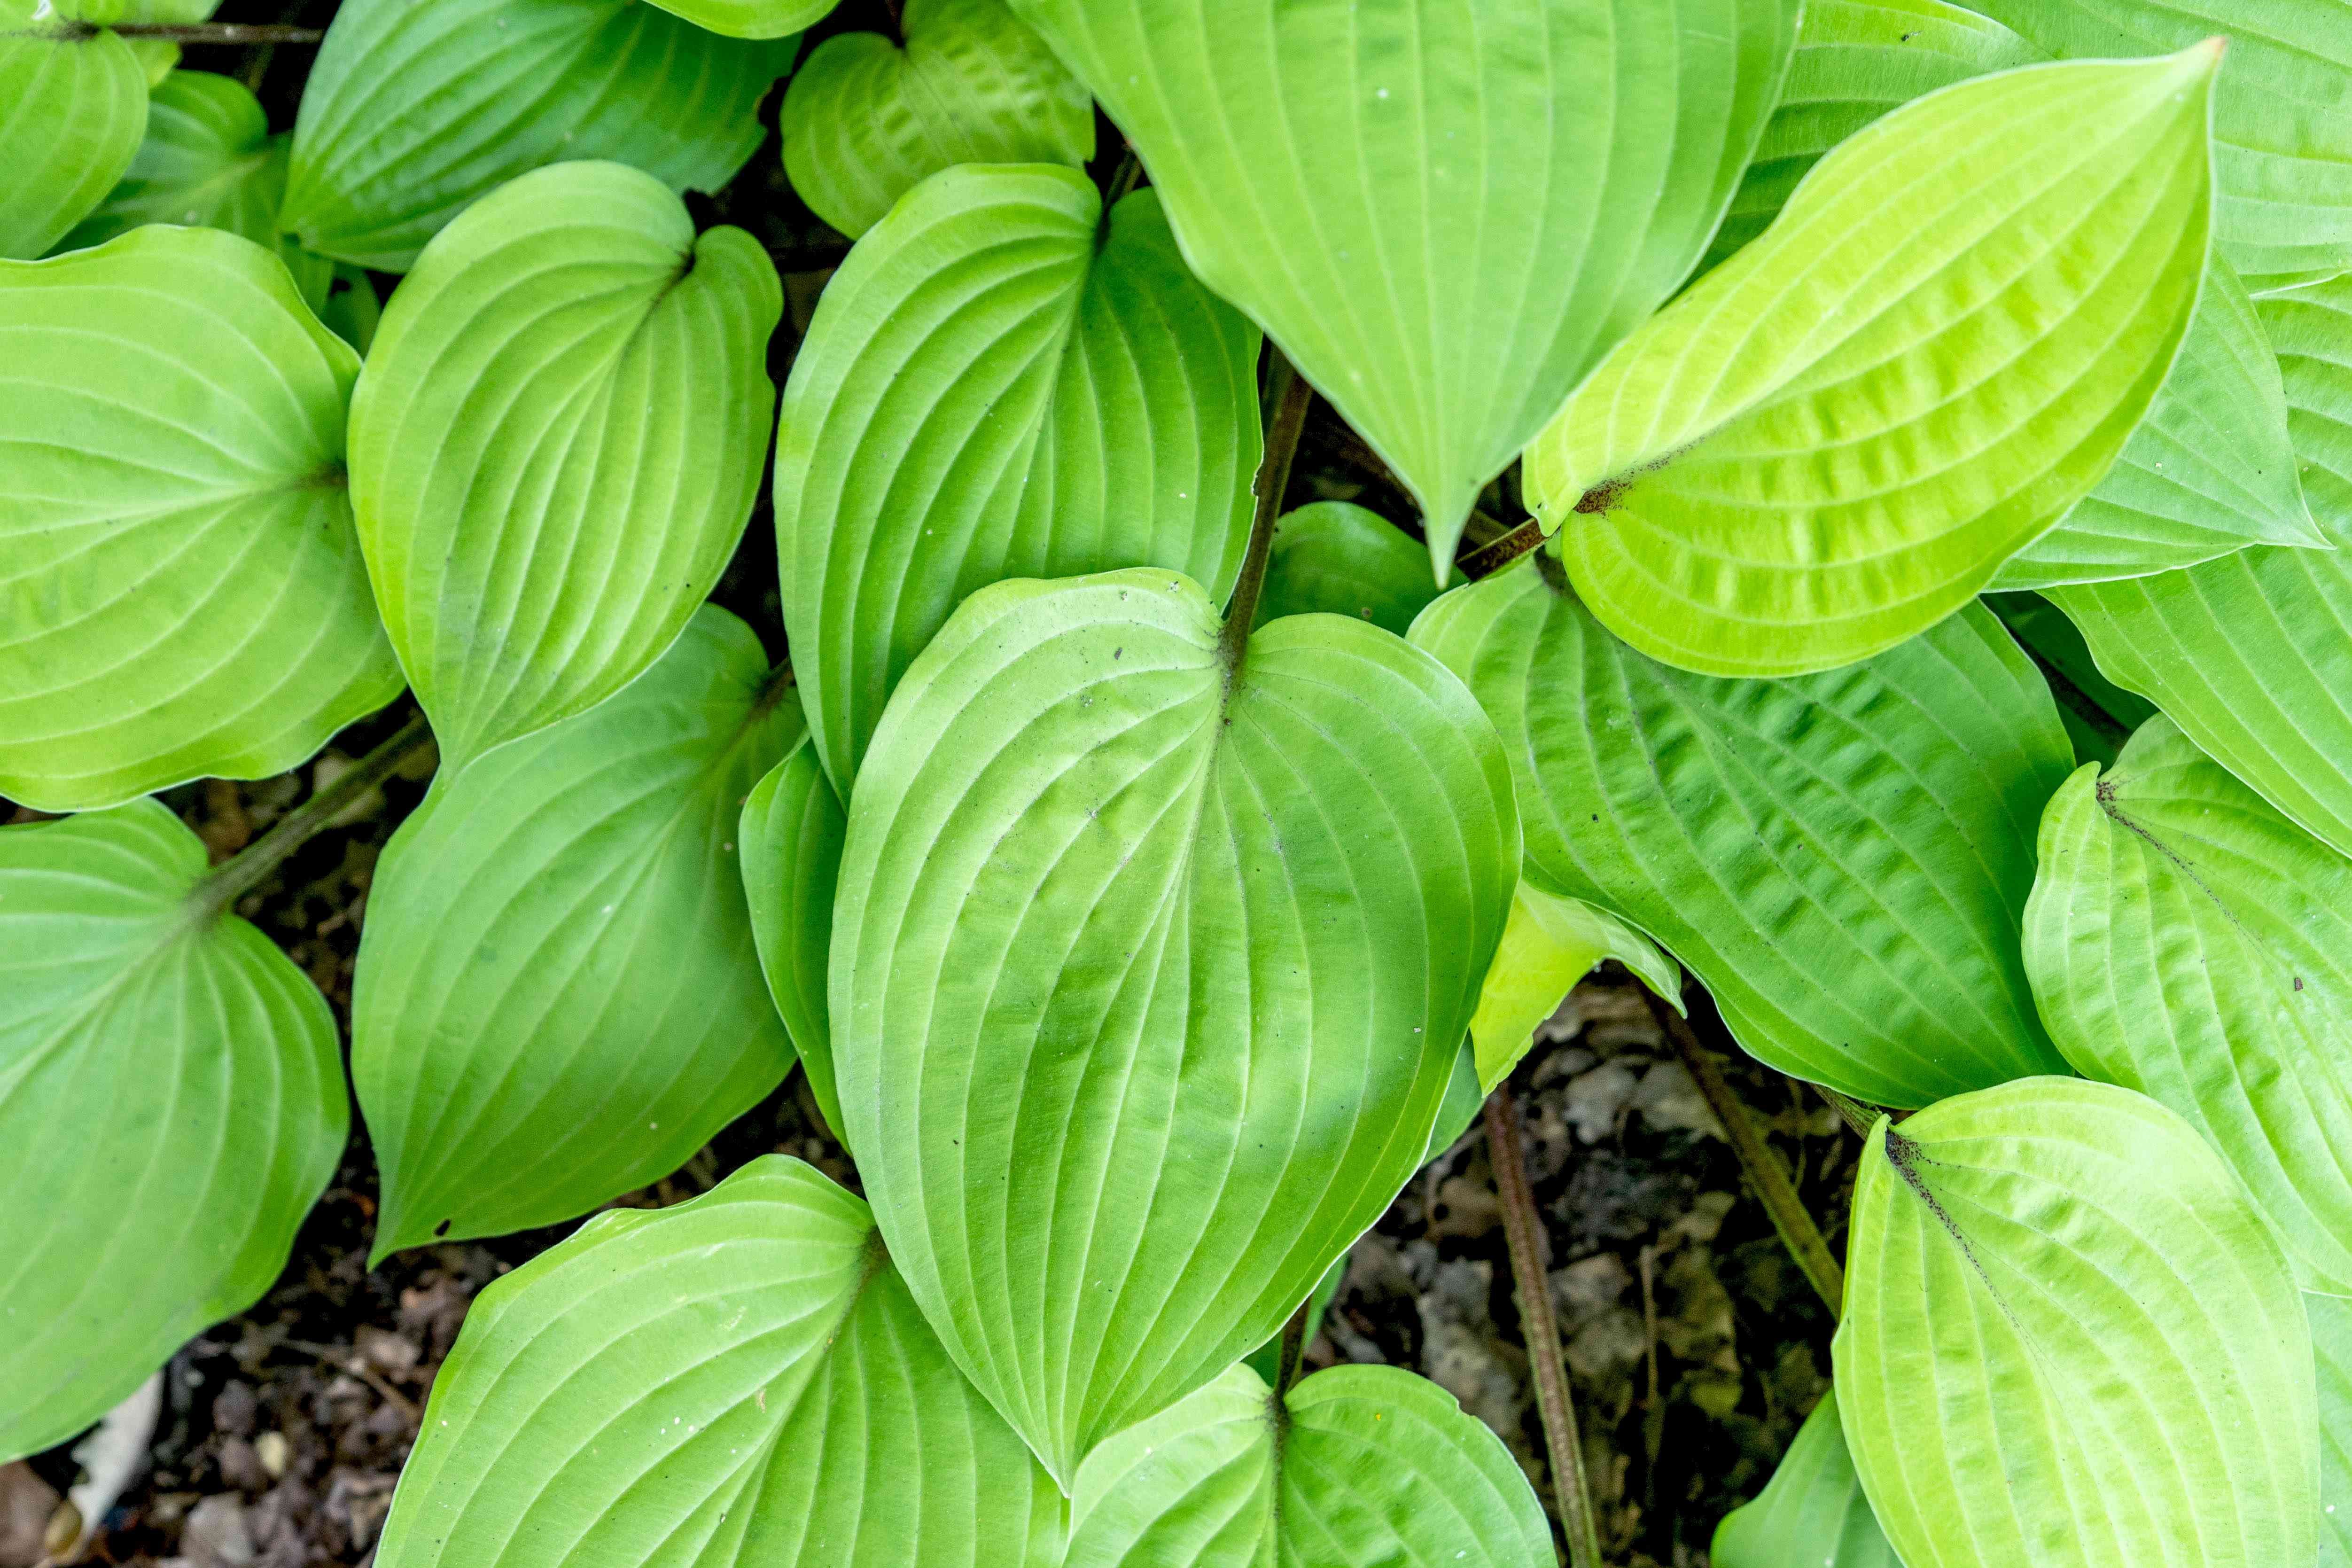 Fire island hosta plant with bright green and yellow-green ribbed leaves closeup